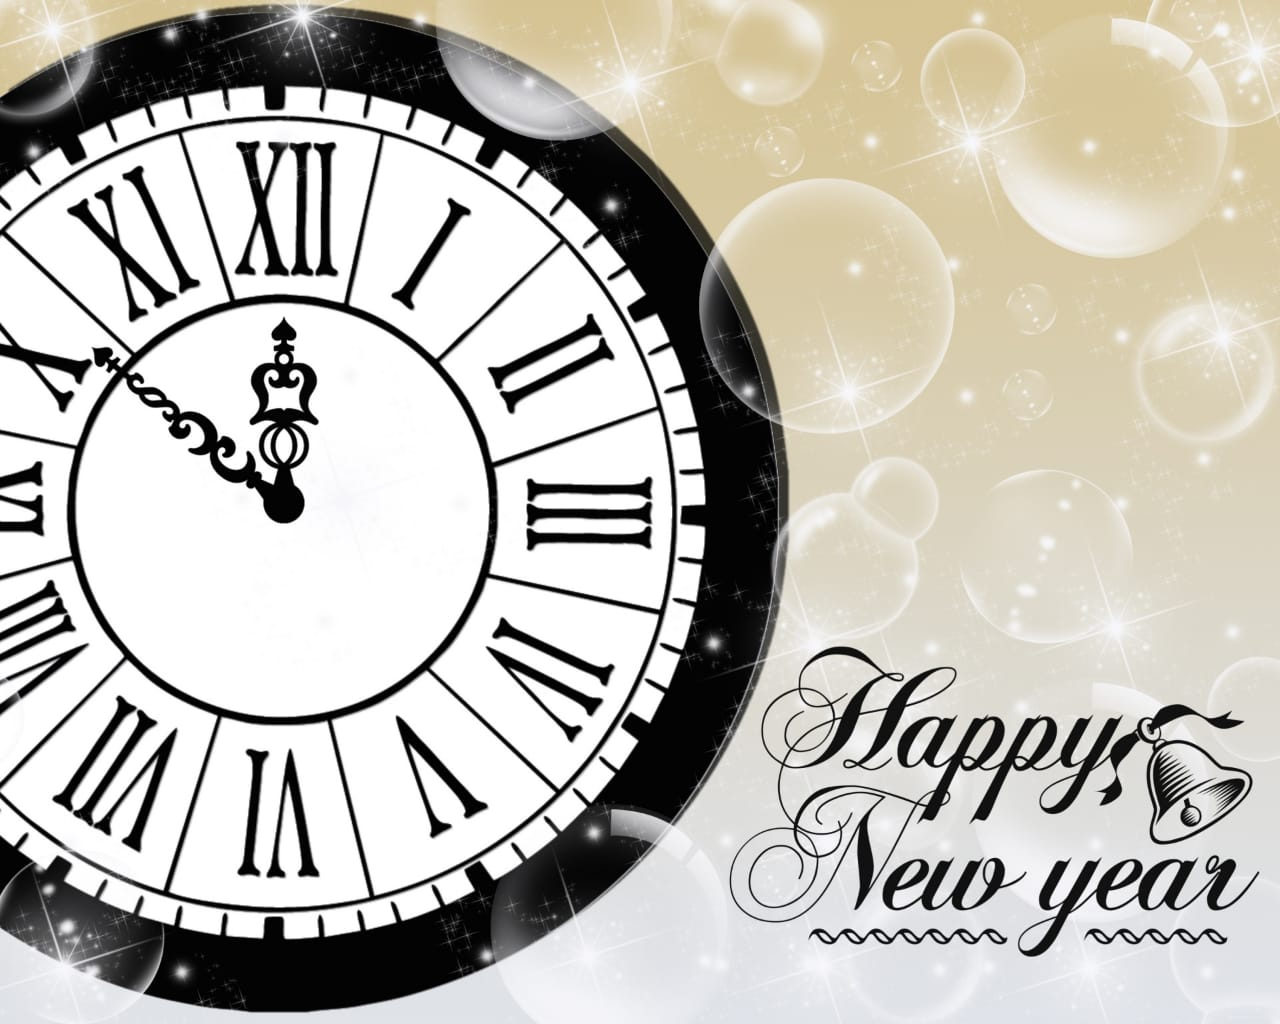 100+ Happy New Year Wishes, Messeges, Quotes, Sms, Facebook And Whatsapp Status